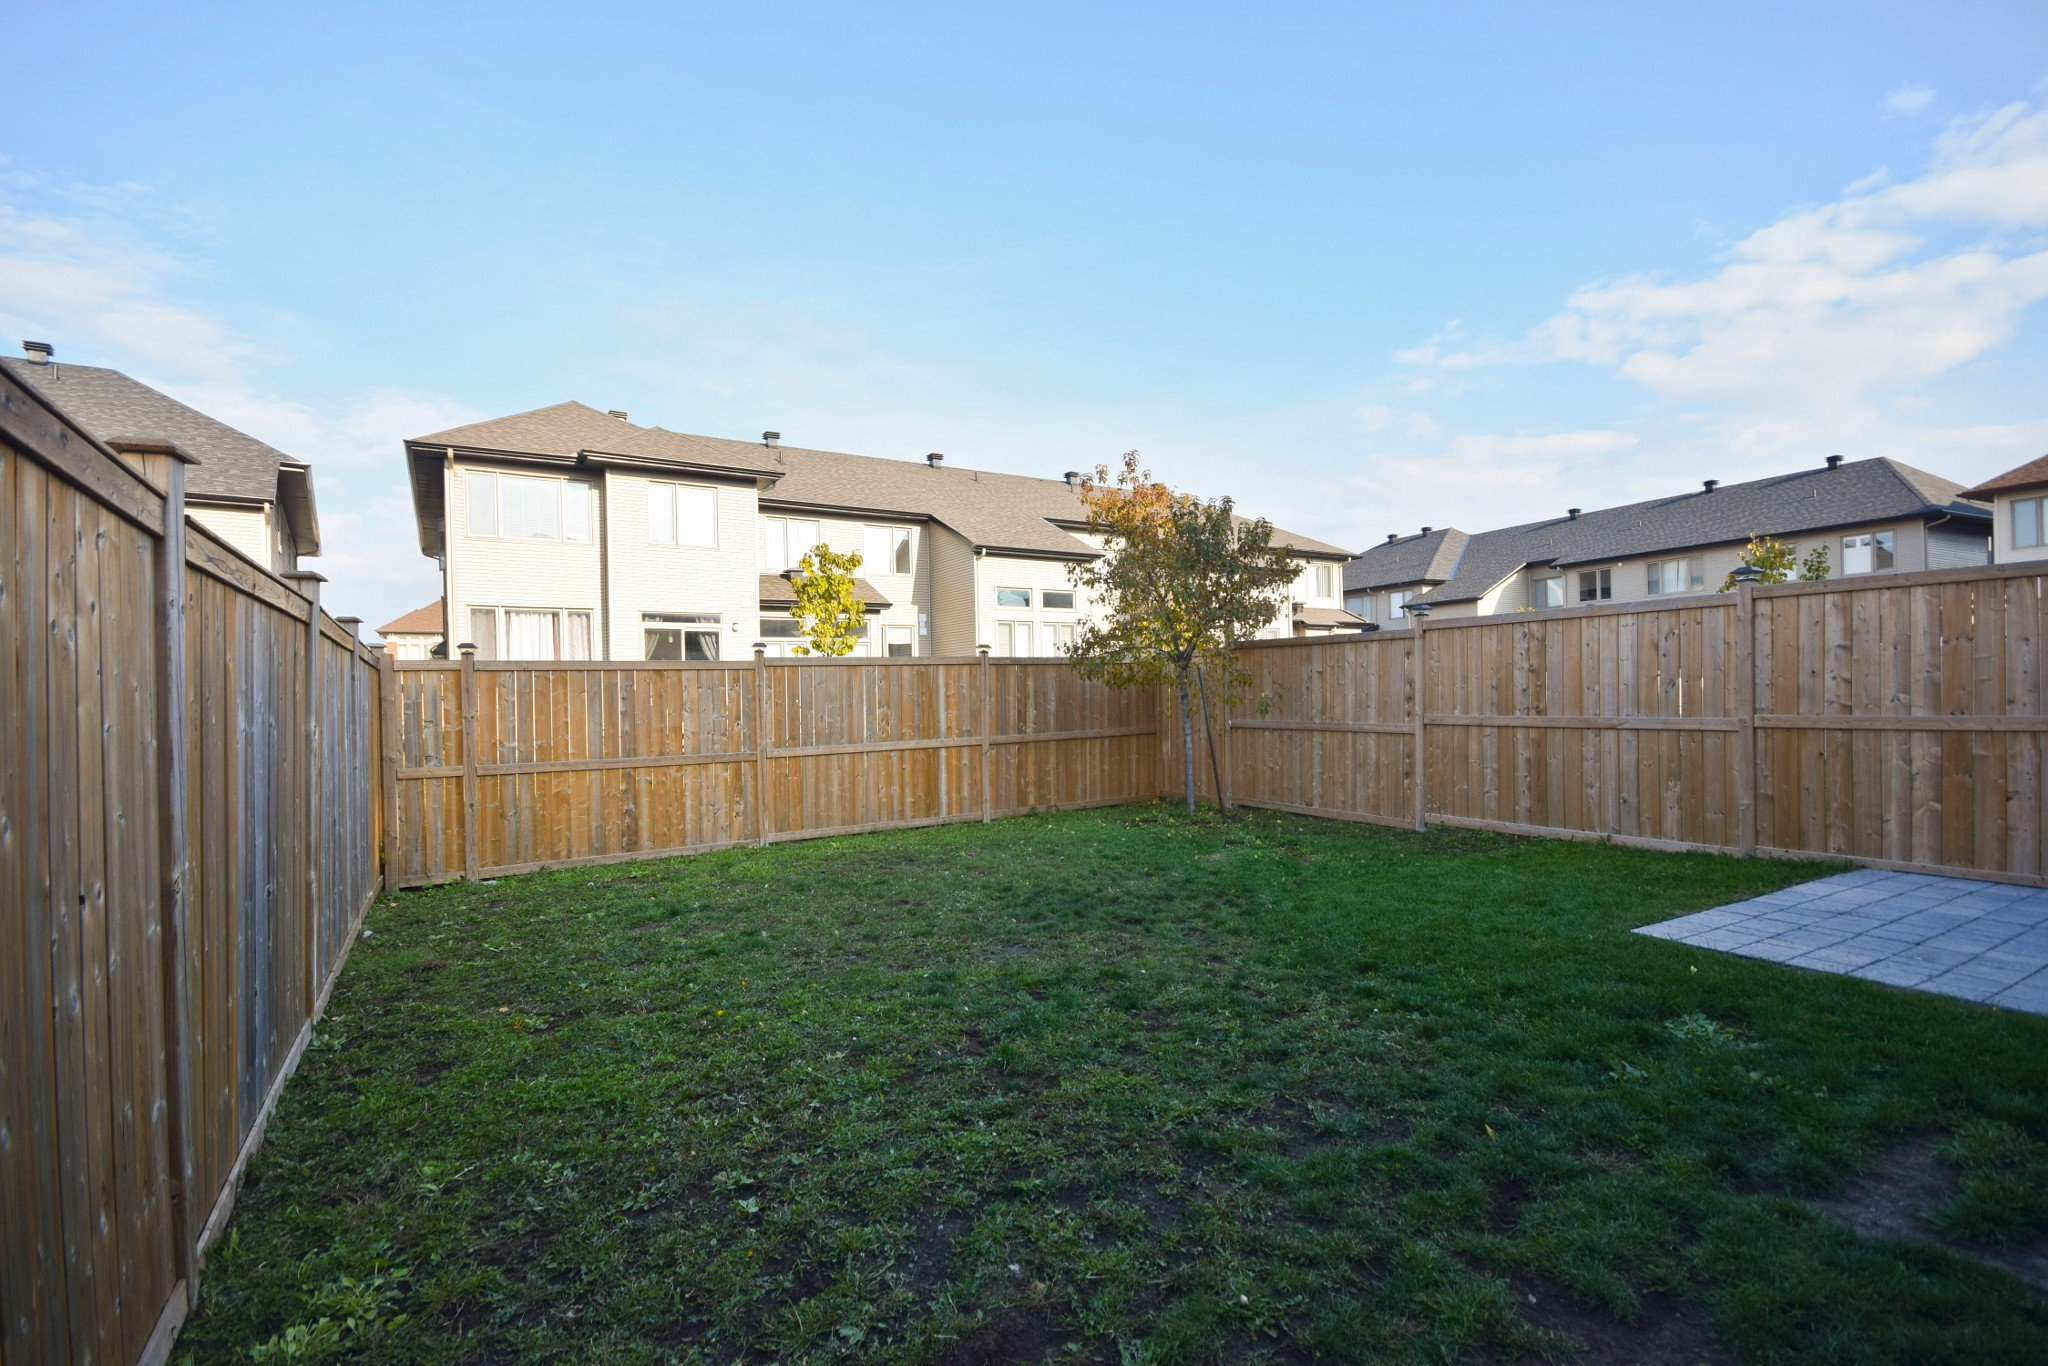 Photo 63: Photos: 131 Popplewell Crescent in Ottawa: Cedargrove / Fraserdale House for sale (Barrhaven)  : MLS®# 1130335